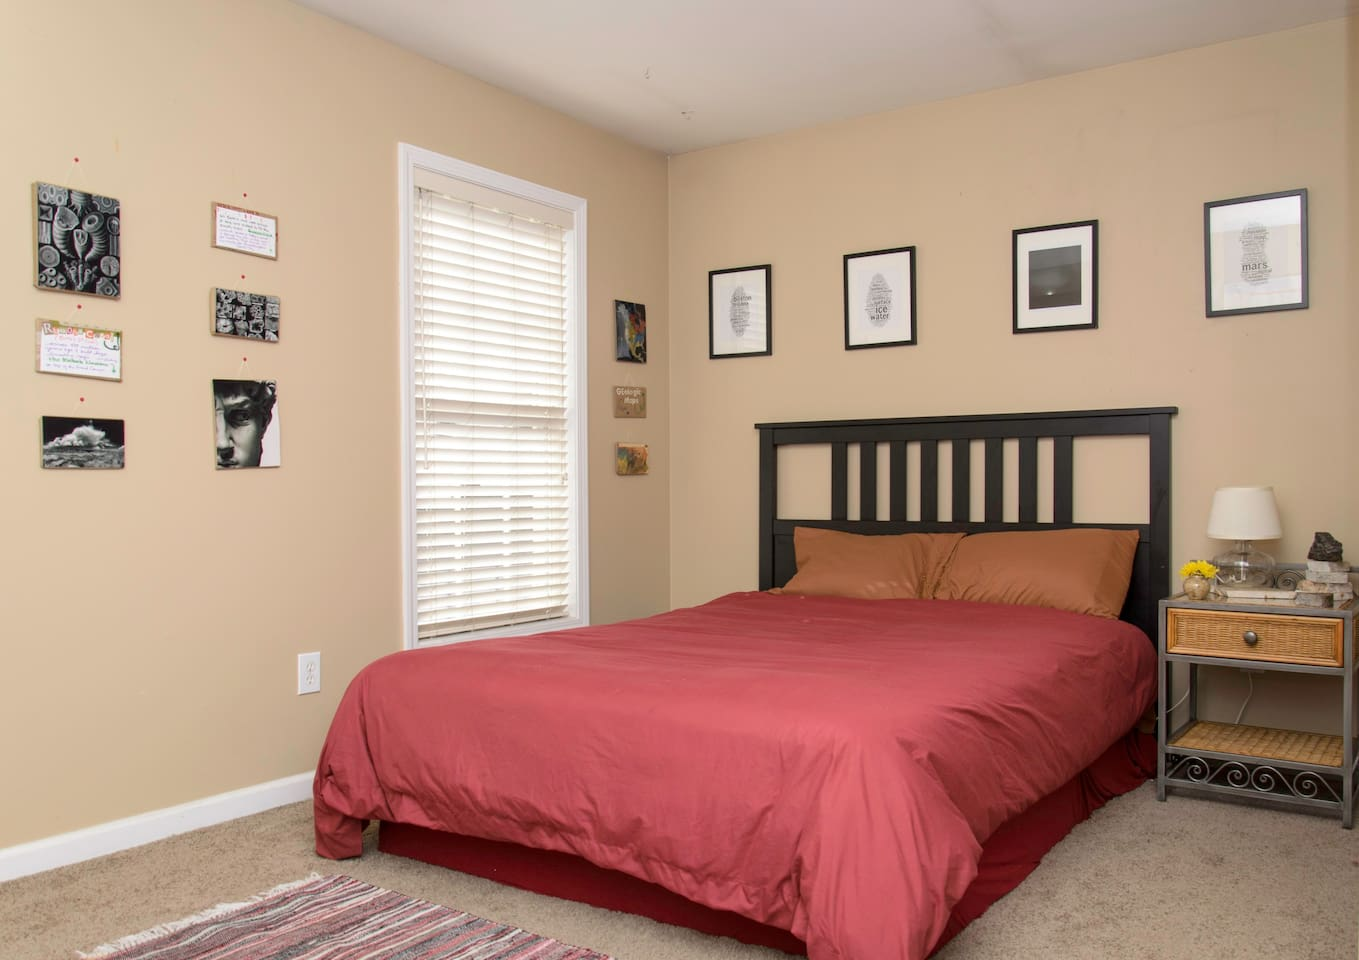 Here is your comfortable queen sized bed.